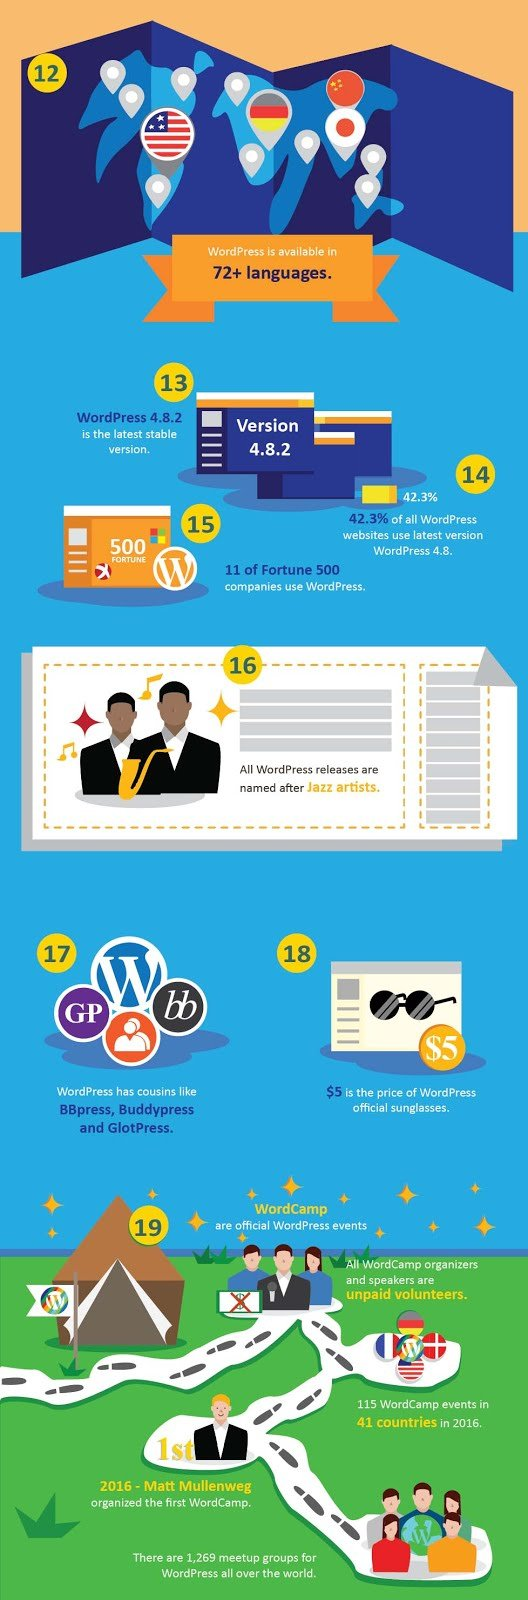 Facts You Don't Know About WordPress